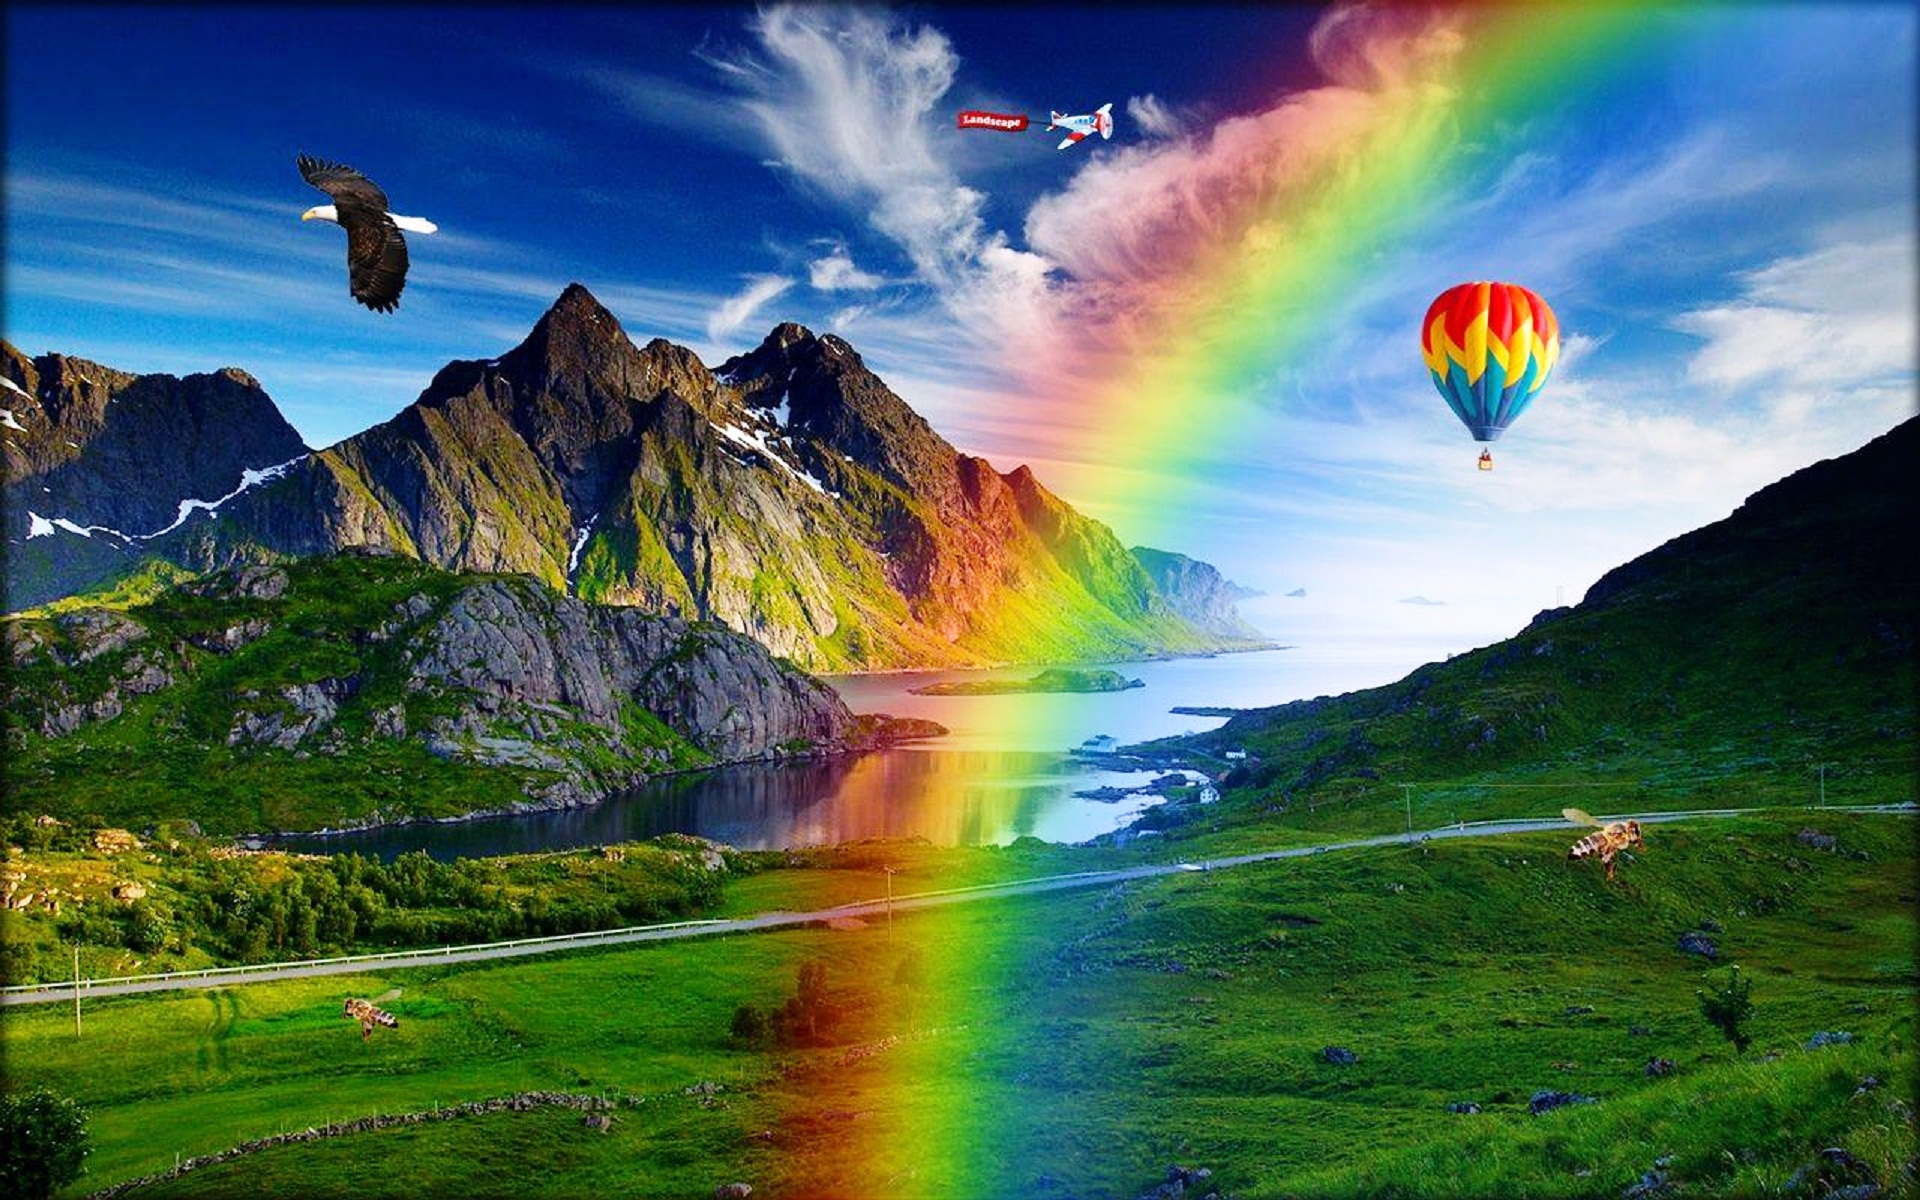 Rainbow and green nature fabulous wallpapers   New hd 1920x1200